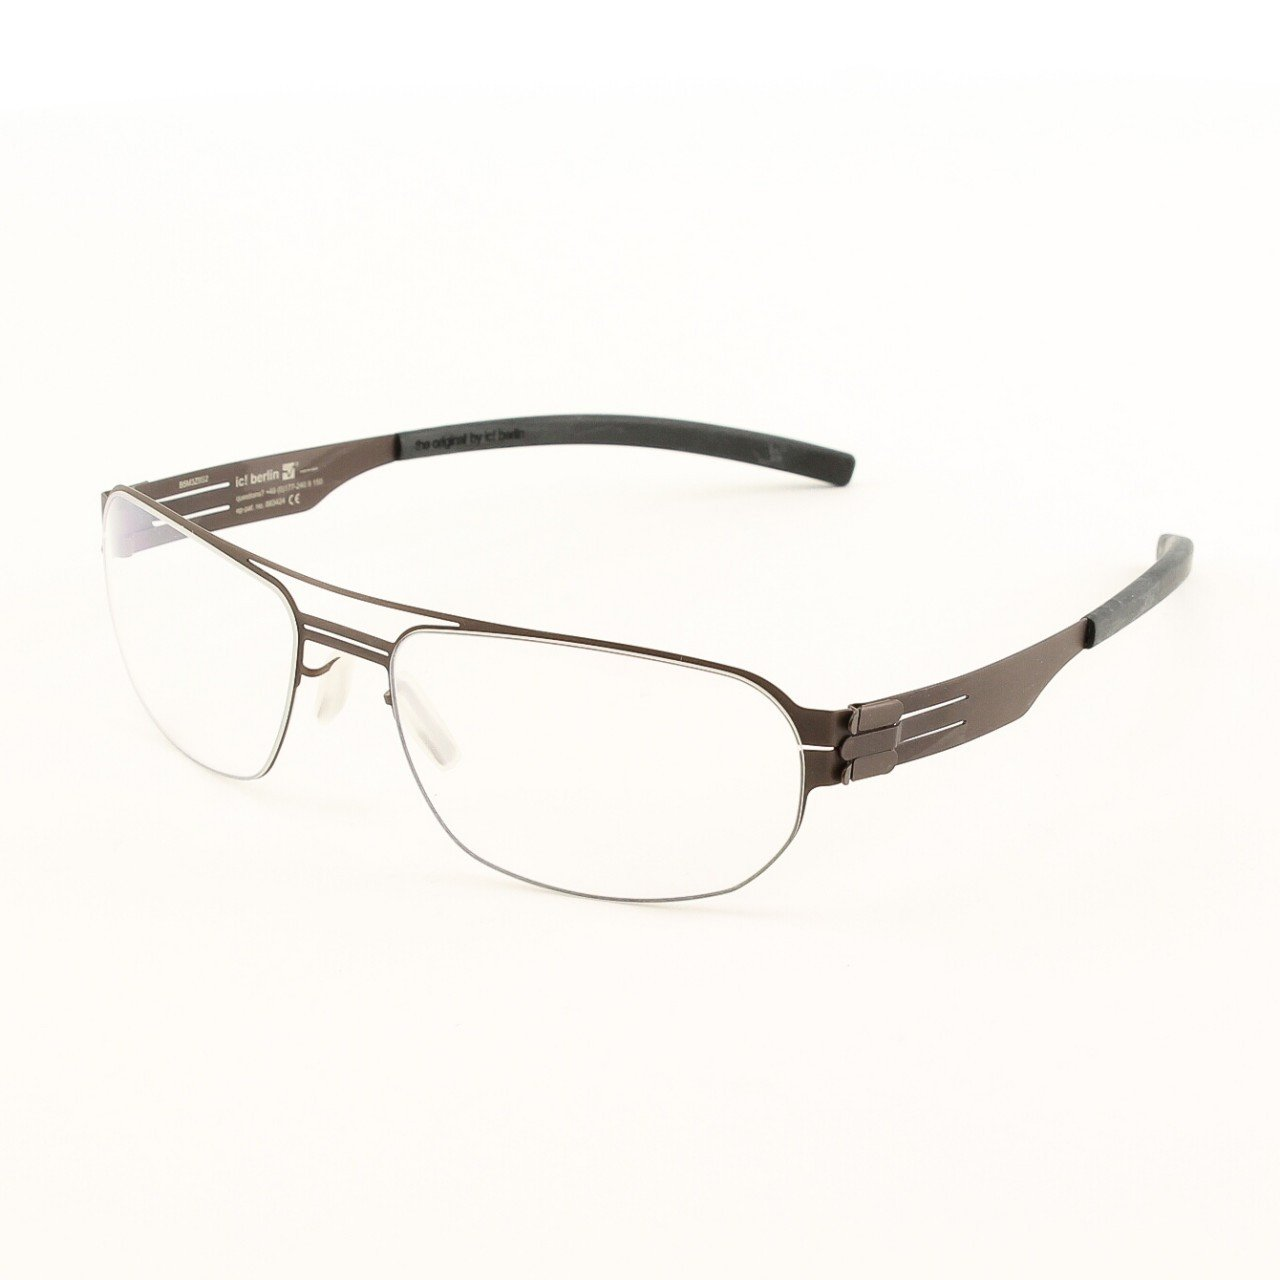 ic! Berlin Oleg P. Eyeglasses Col. Chocolate with Clear Lenses